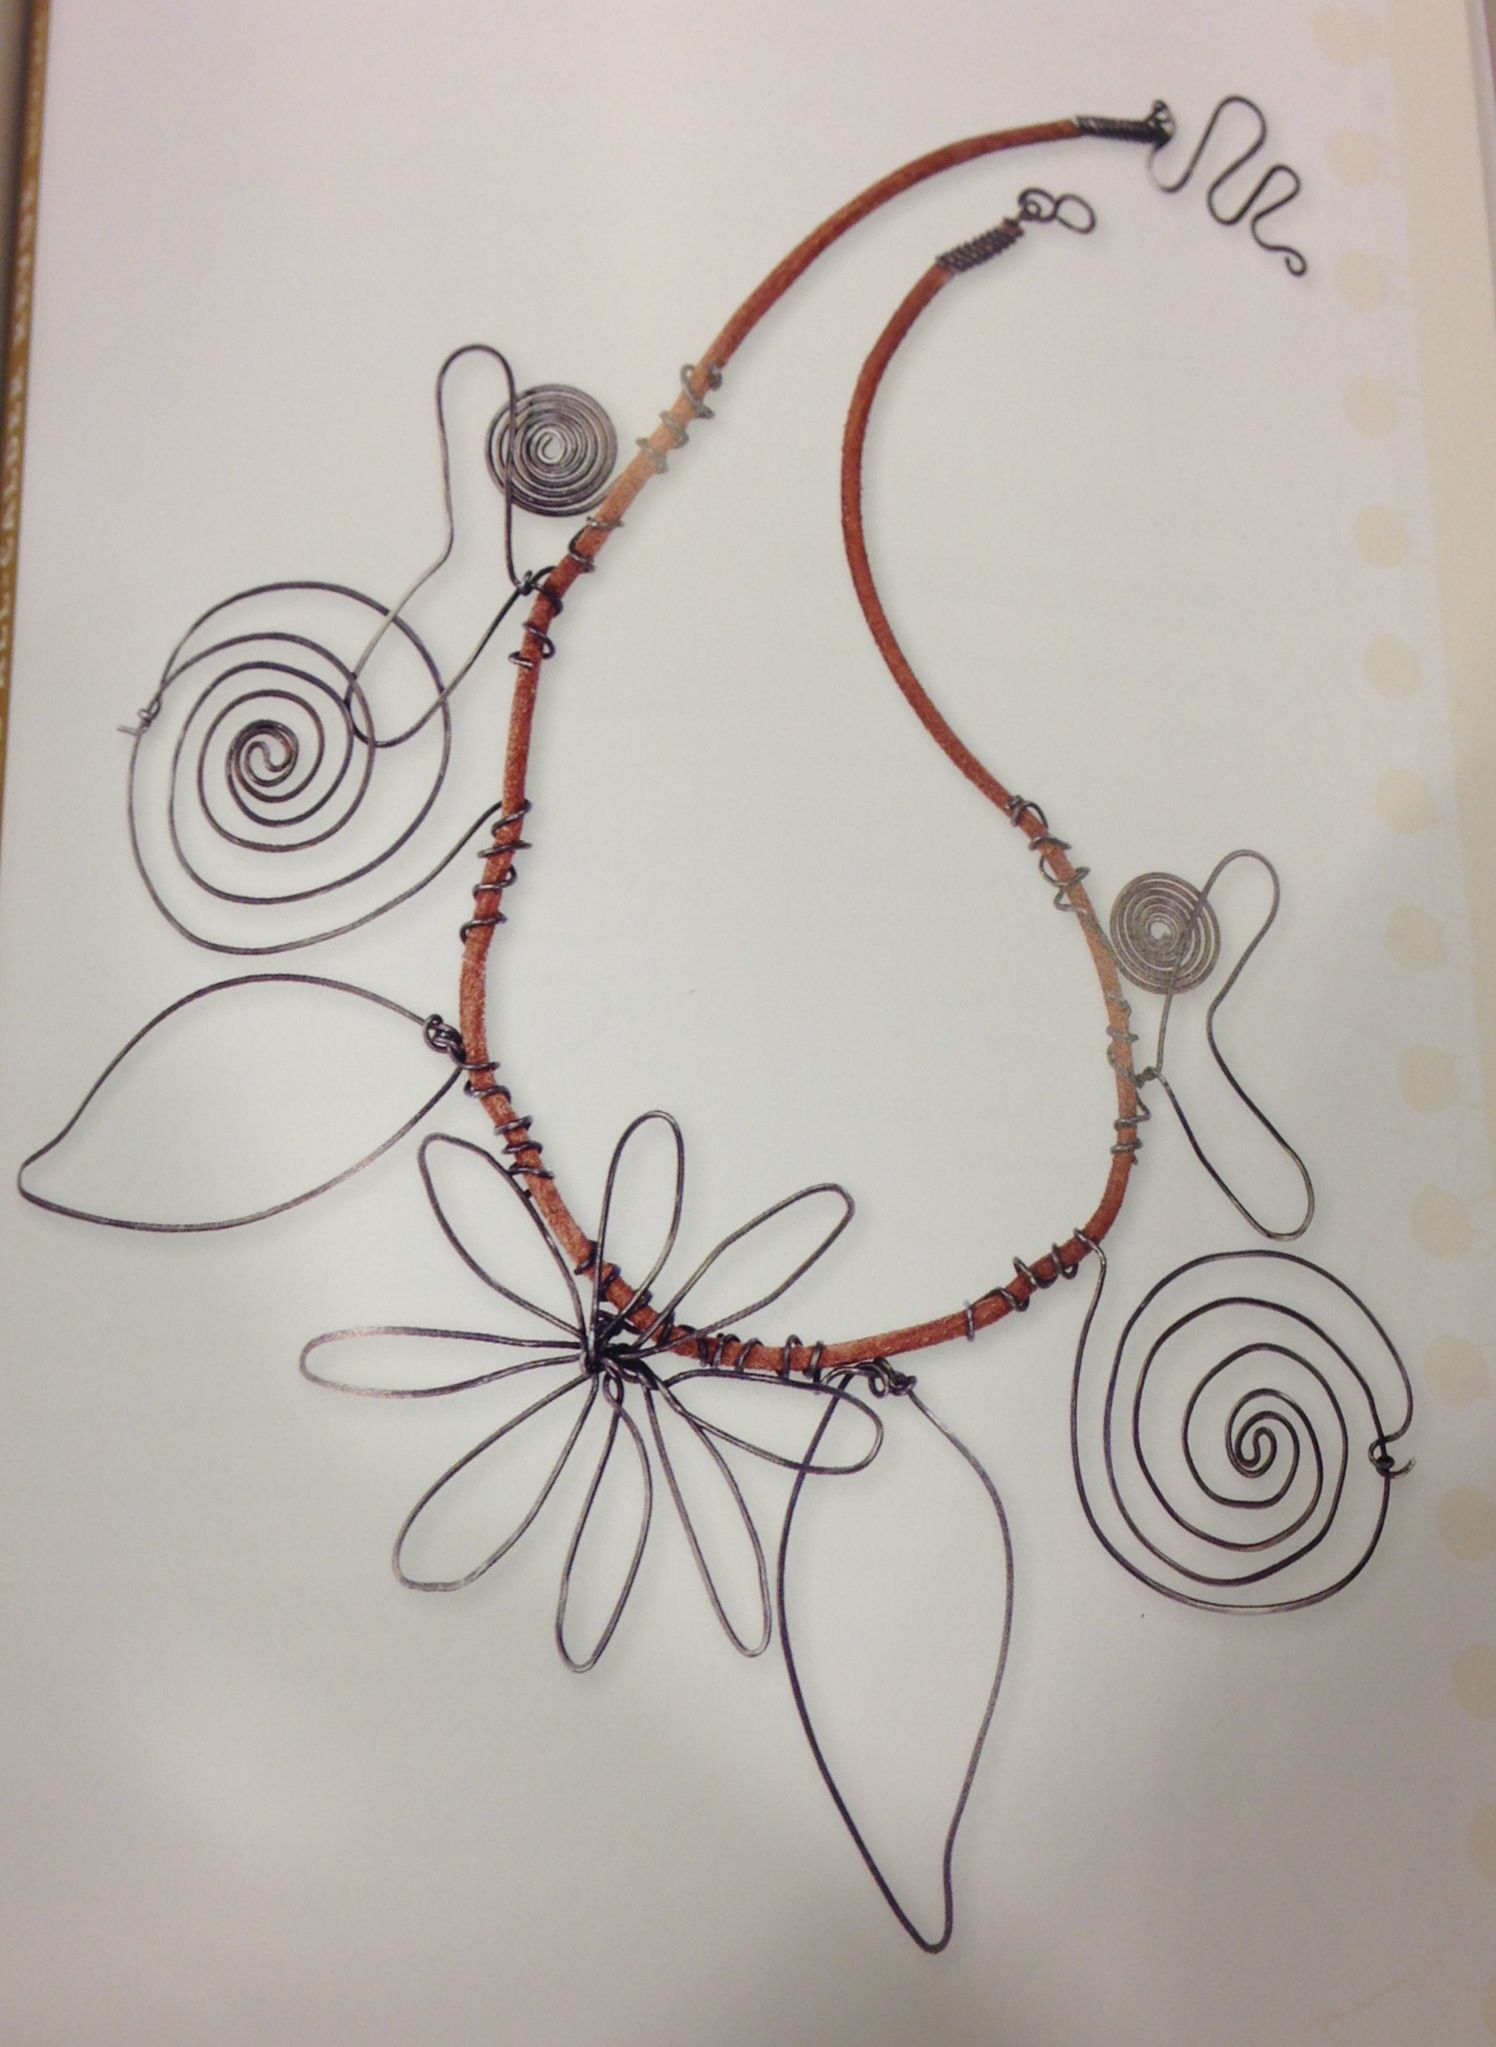 Wire jewelry idea | Jewelry | Pinterest | Wire, Wire jewelry and Jewelry